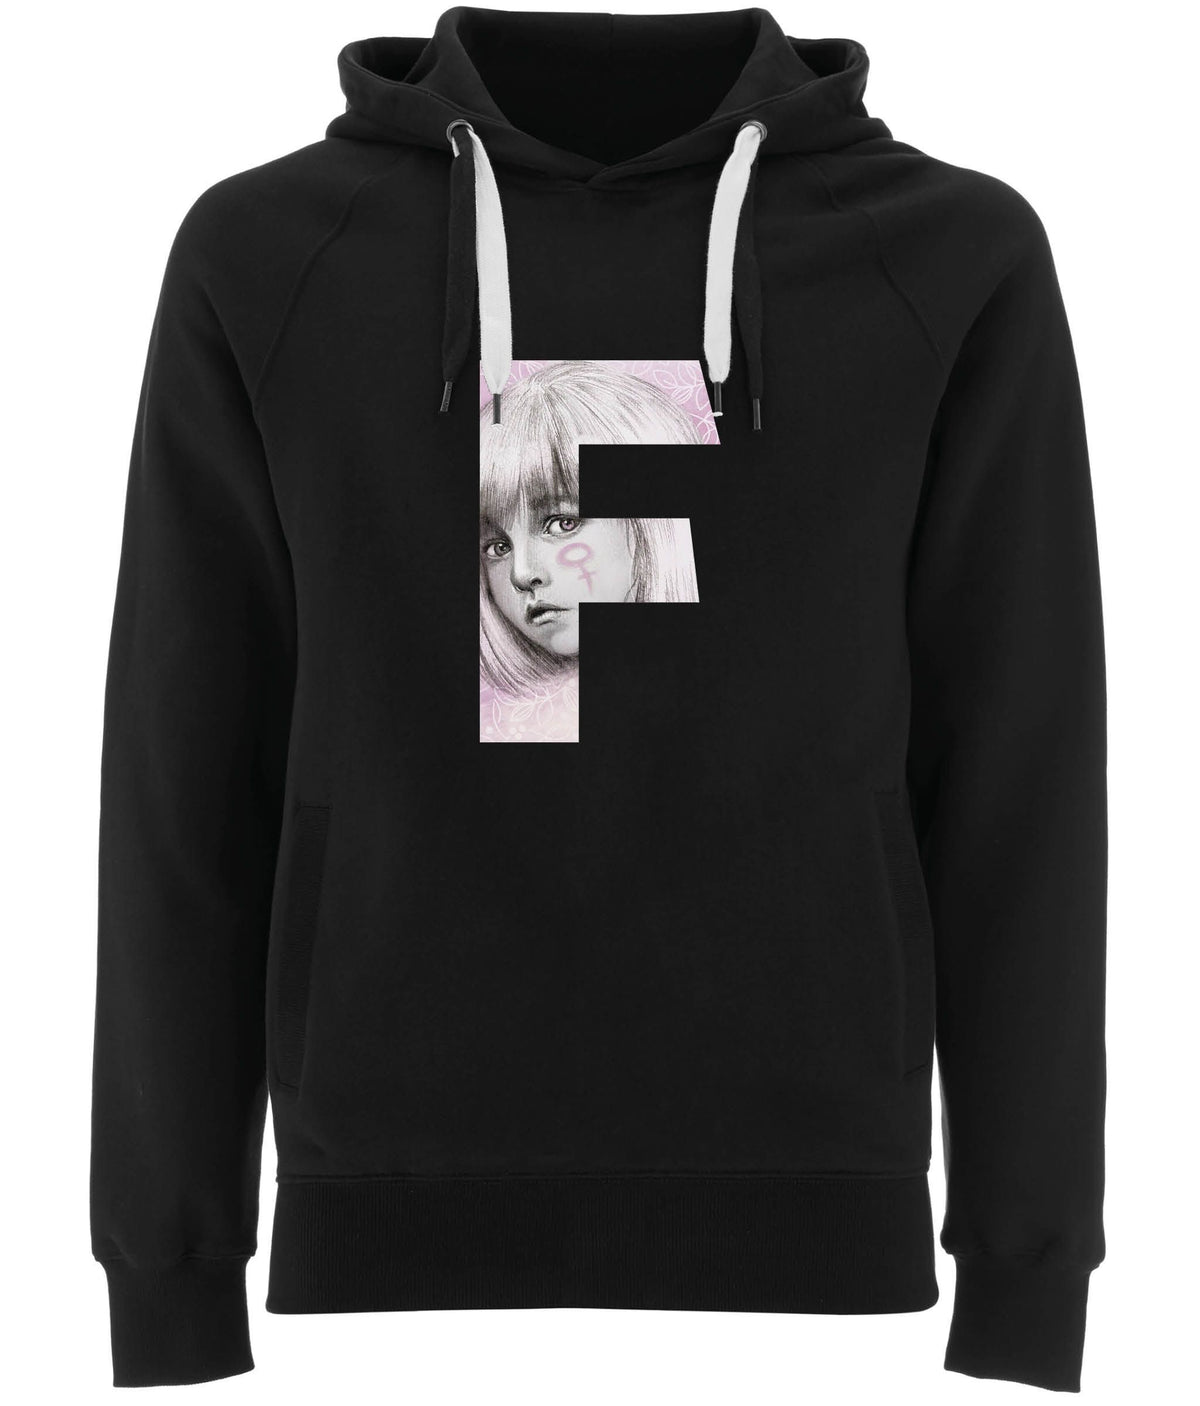 F For Her Organic Combed Cotton Hoodie Black